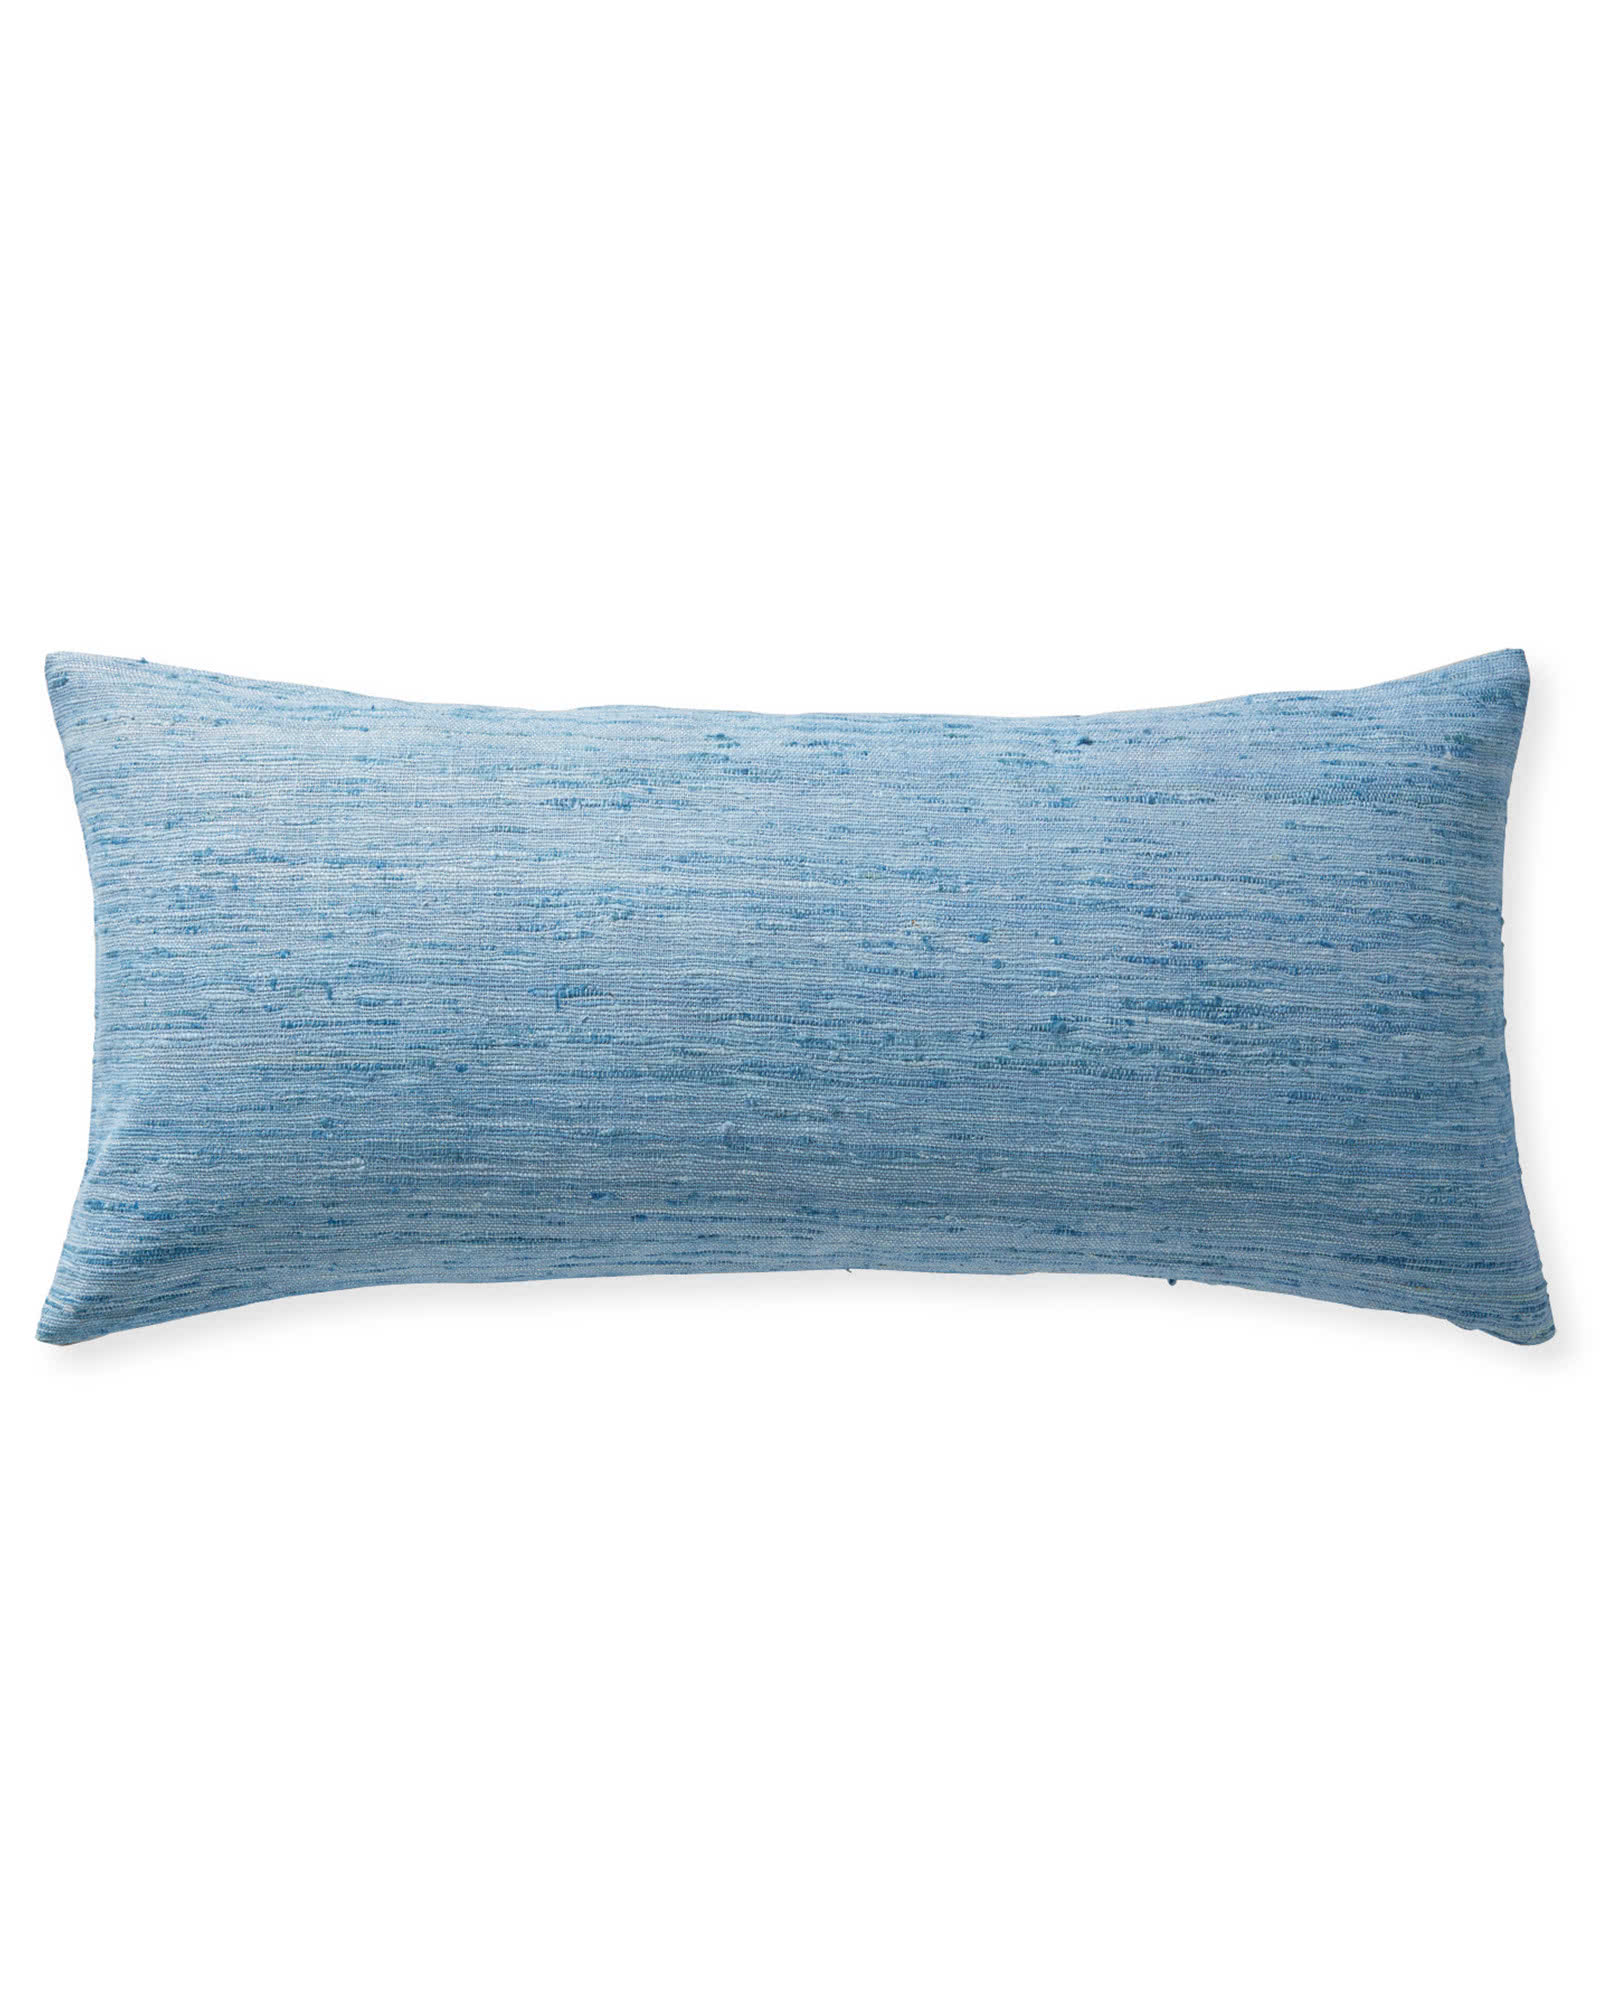 Provence Pillow Cover, Harbor